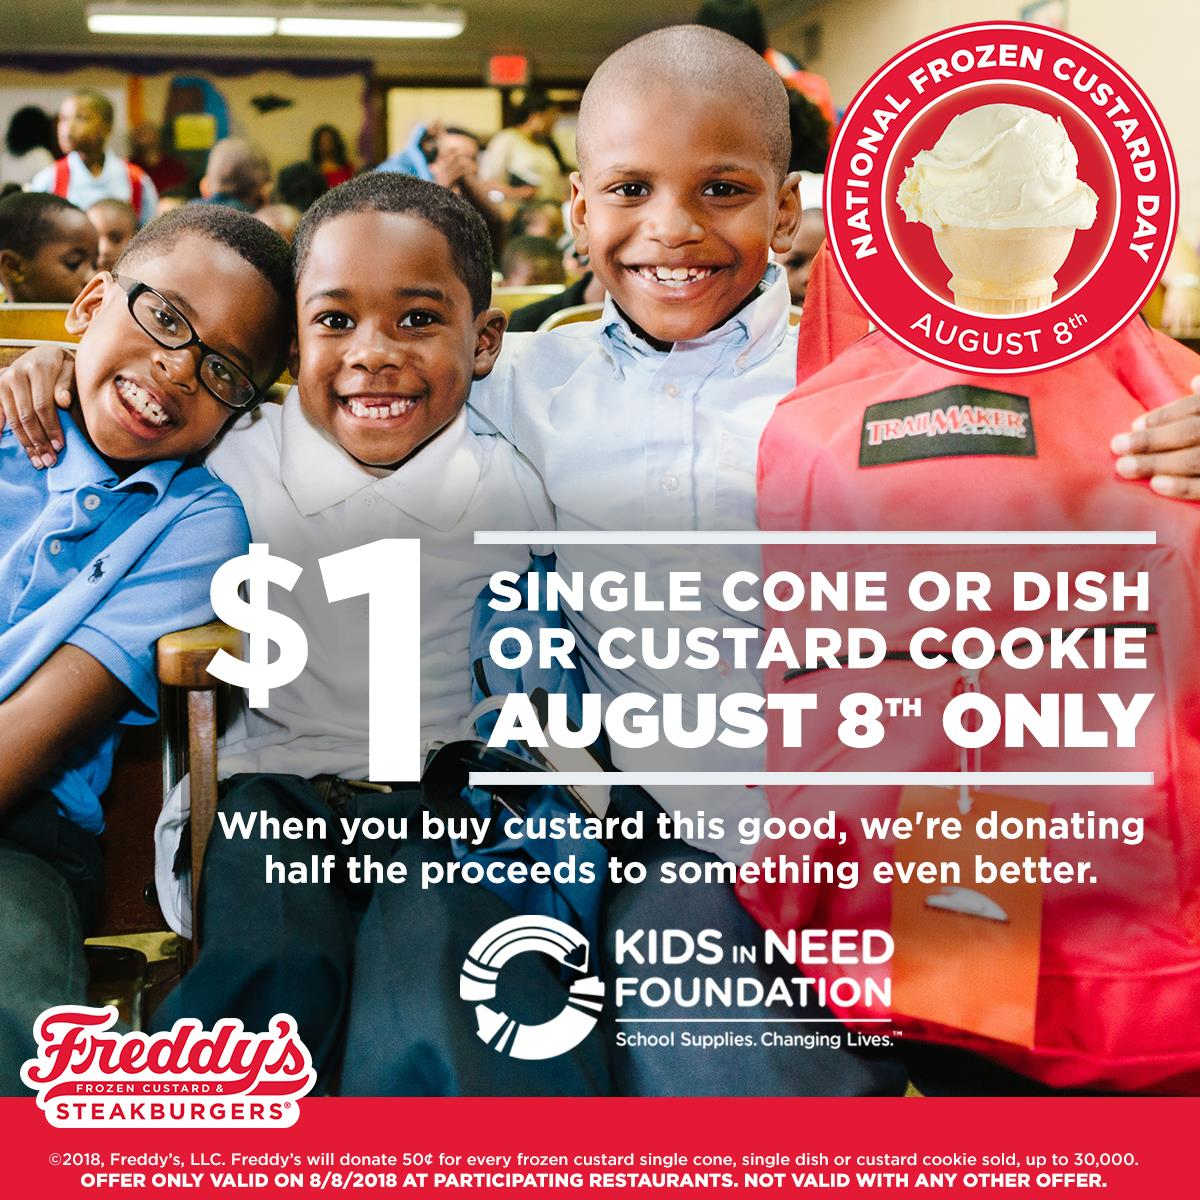 Freddys Steakburgers Coupon July 2019 $1 custard cone, dish or cookie today at Freddys Steakburgers restaurants